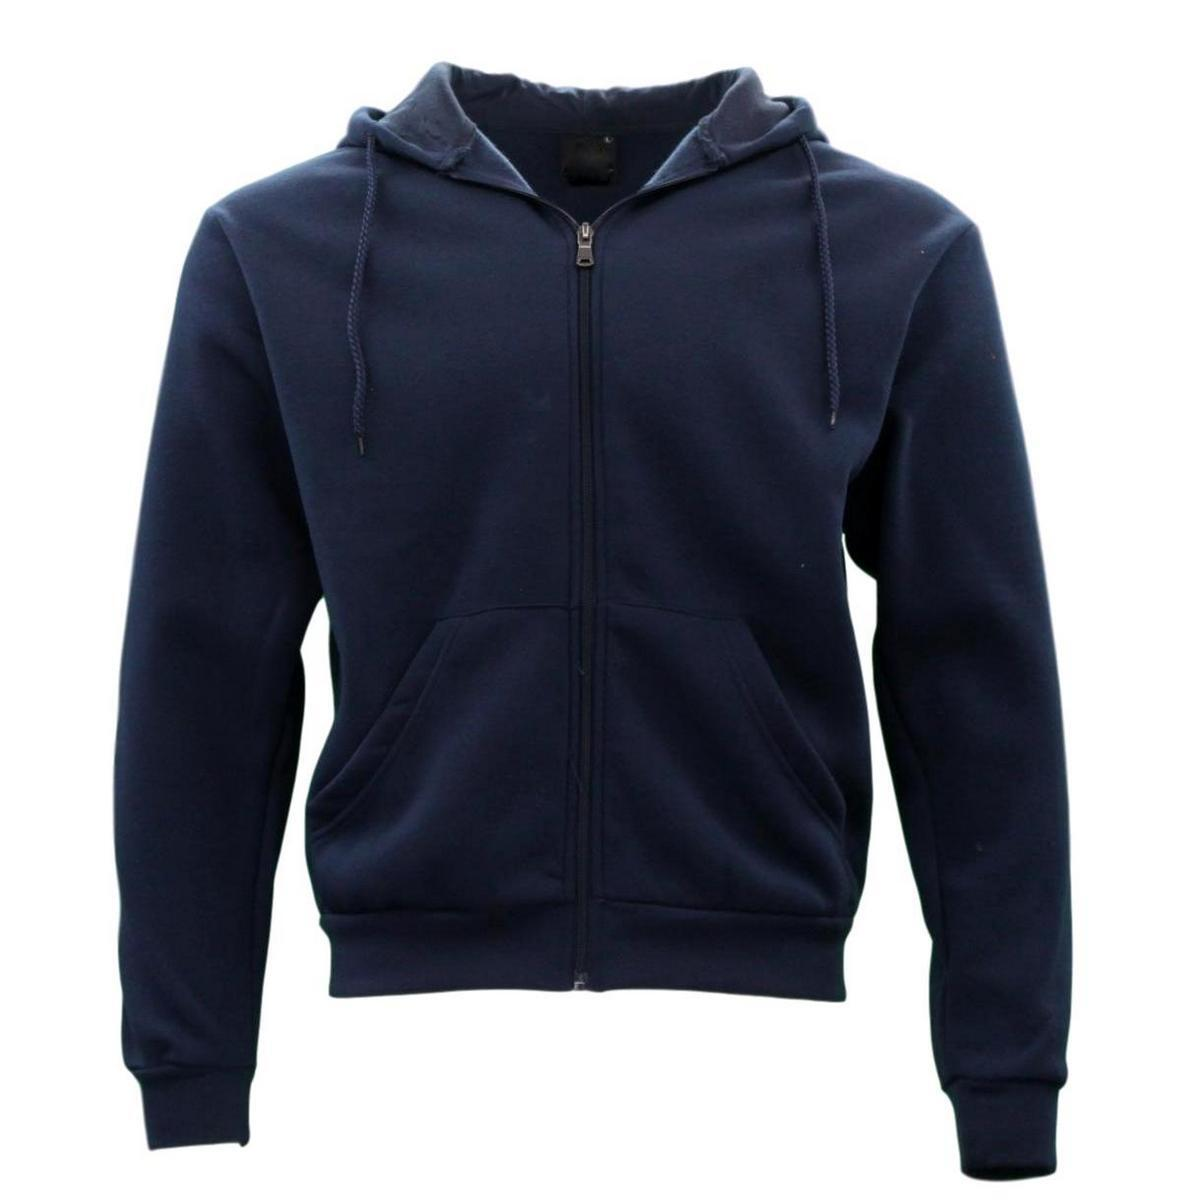 Adult-Unisex-Men-039-s-Zip-Up-Hoodie-w-Fleece-Hooded-Jacket-Jumper-Basic-Blank-Plain thumbnail 7